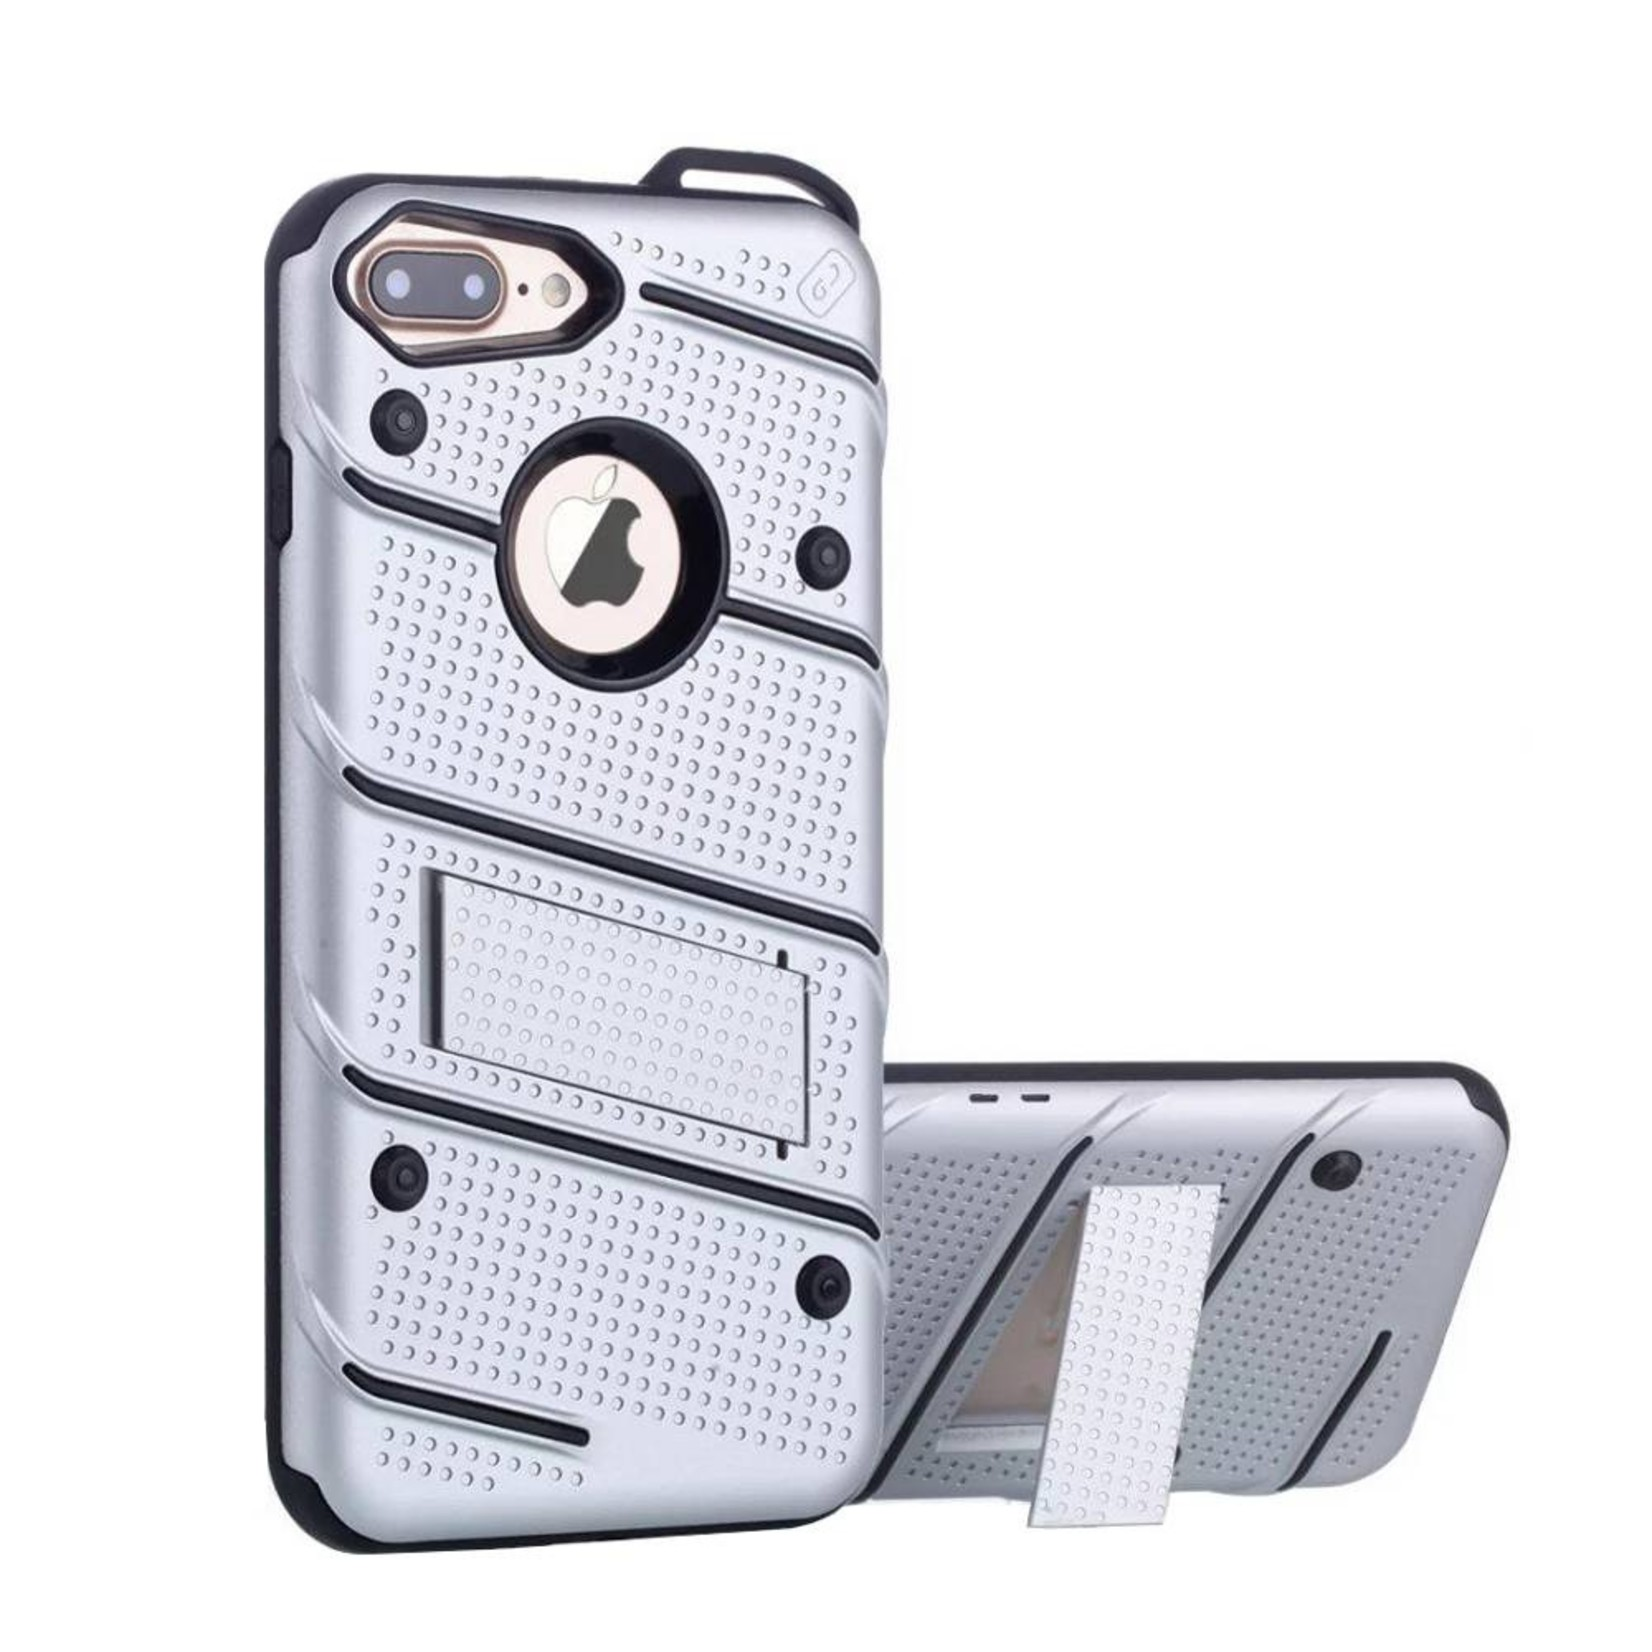 Colorfone Hoesje Armour Stand iPhone 6 Plus Zilver